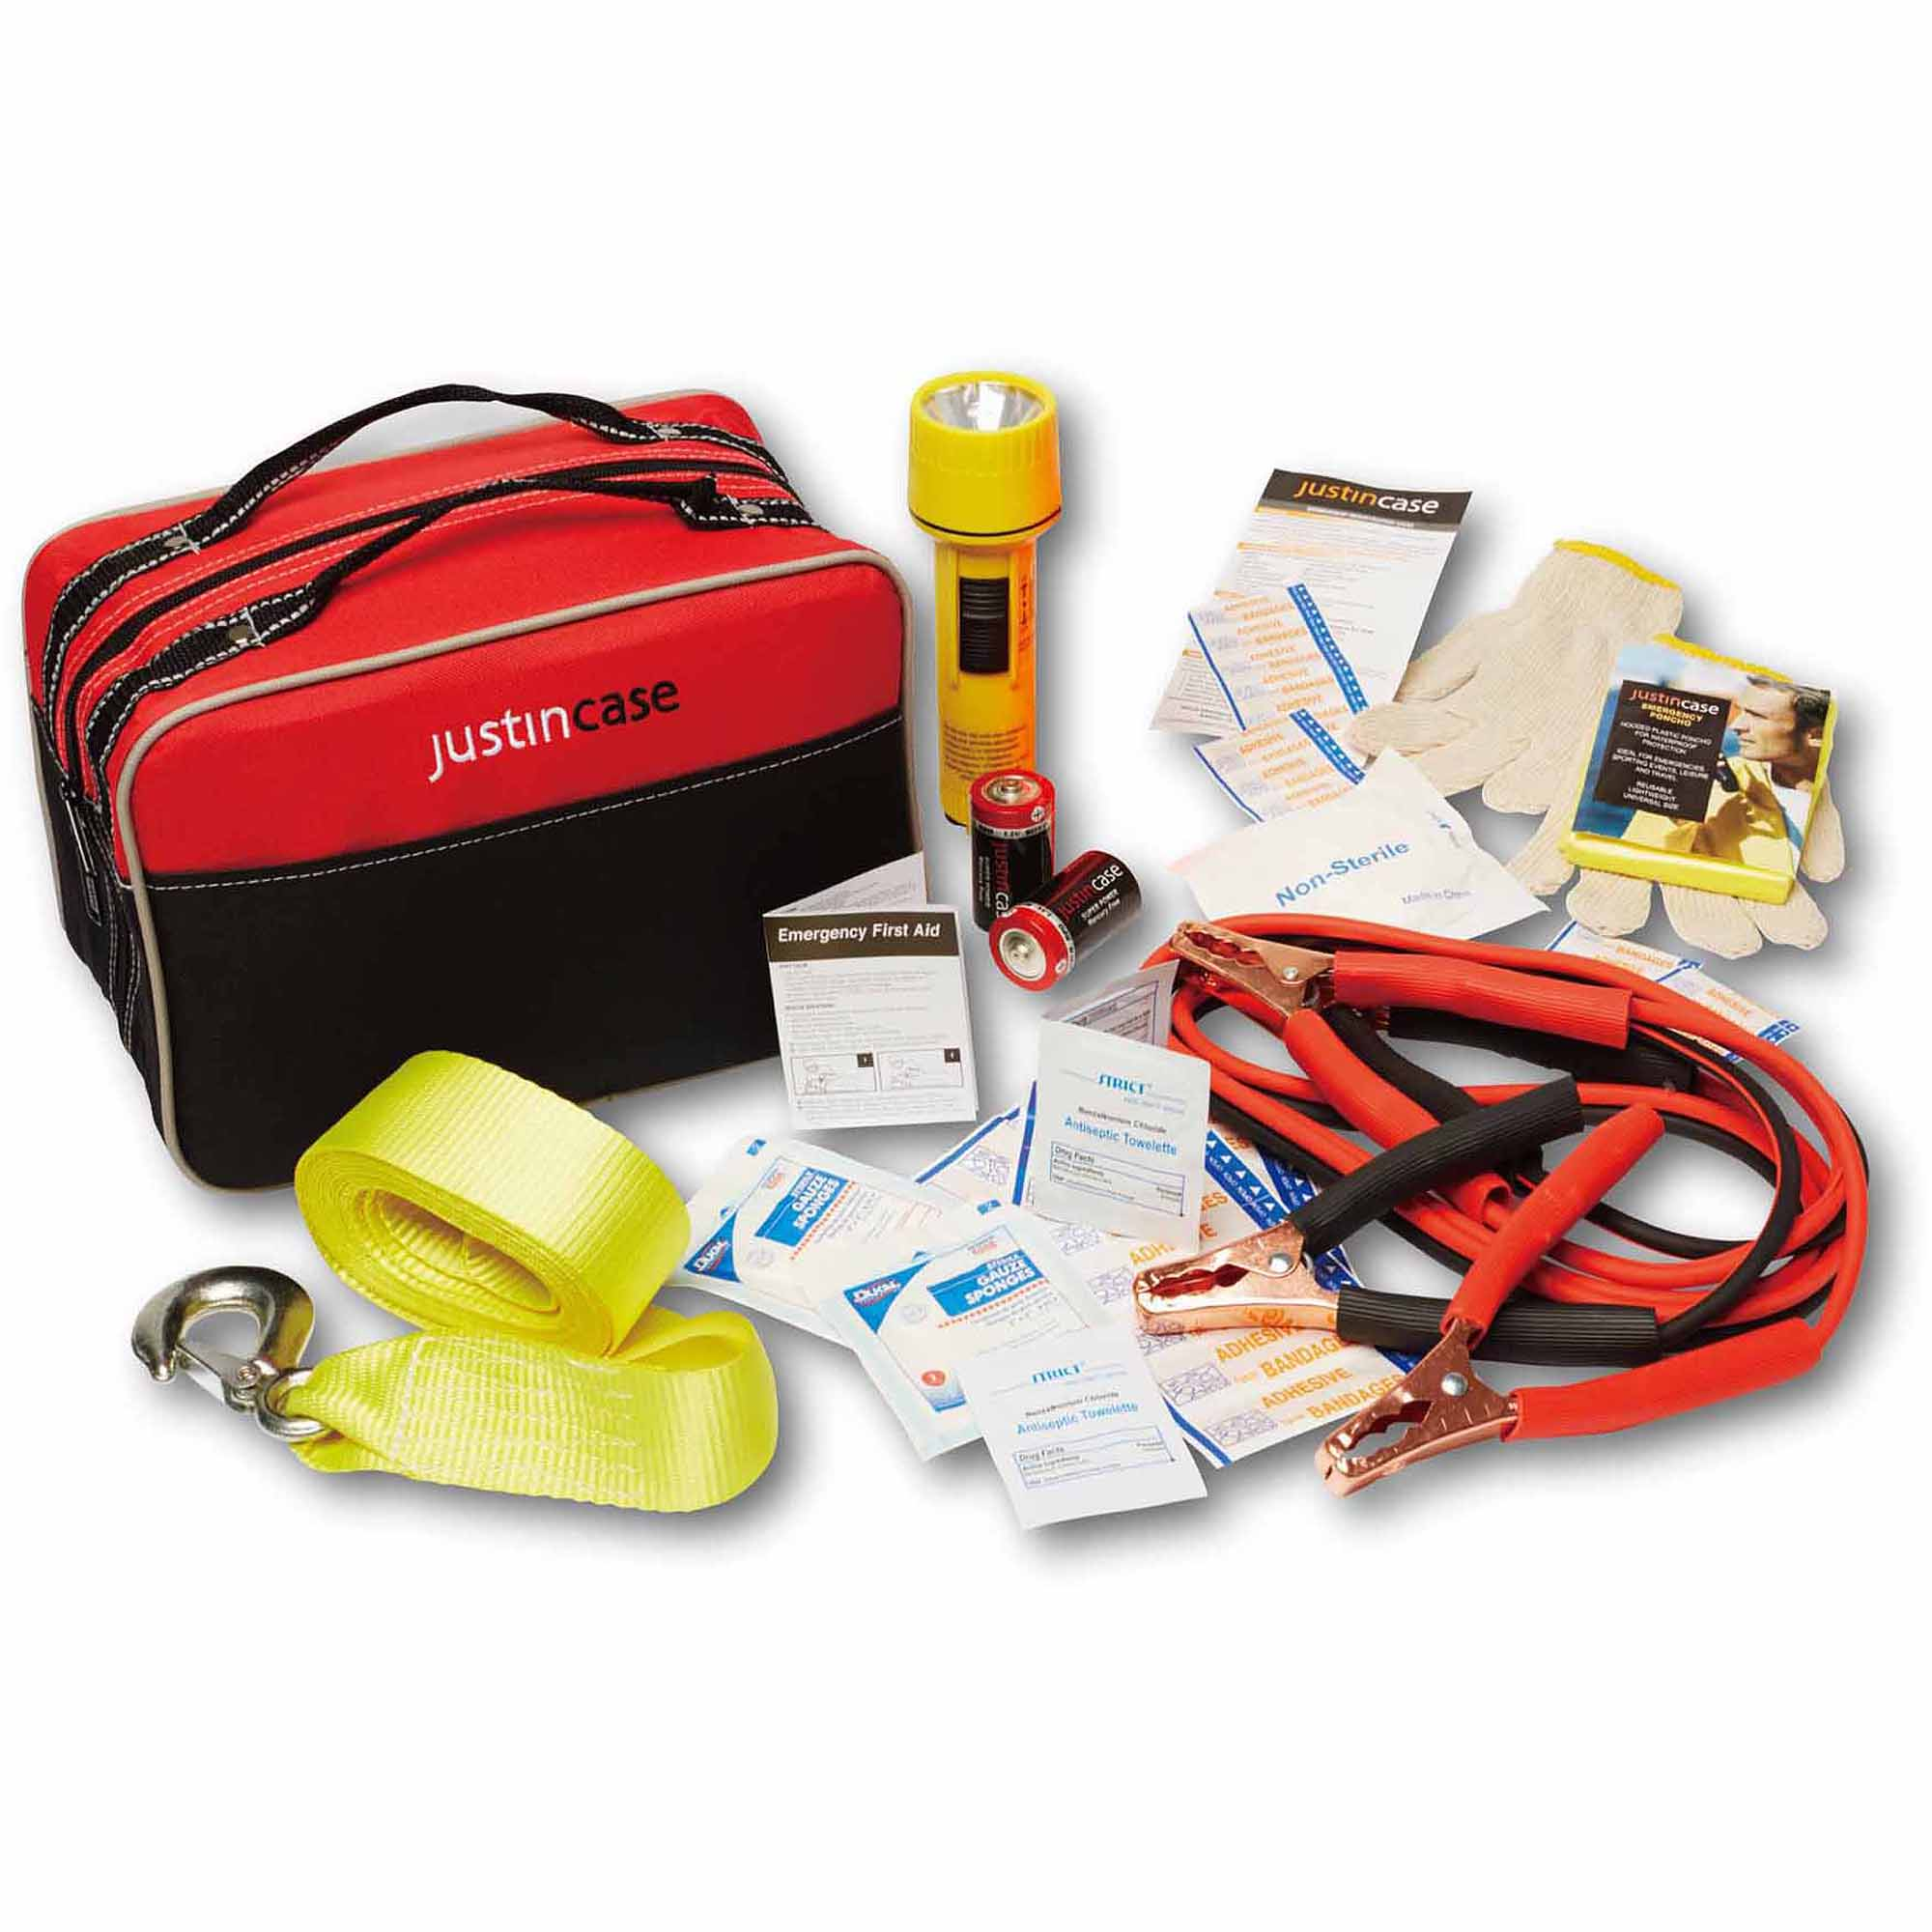 Click here to buy Justin Case Travel Pro Auto Safety Kit by justincase.